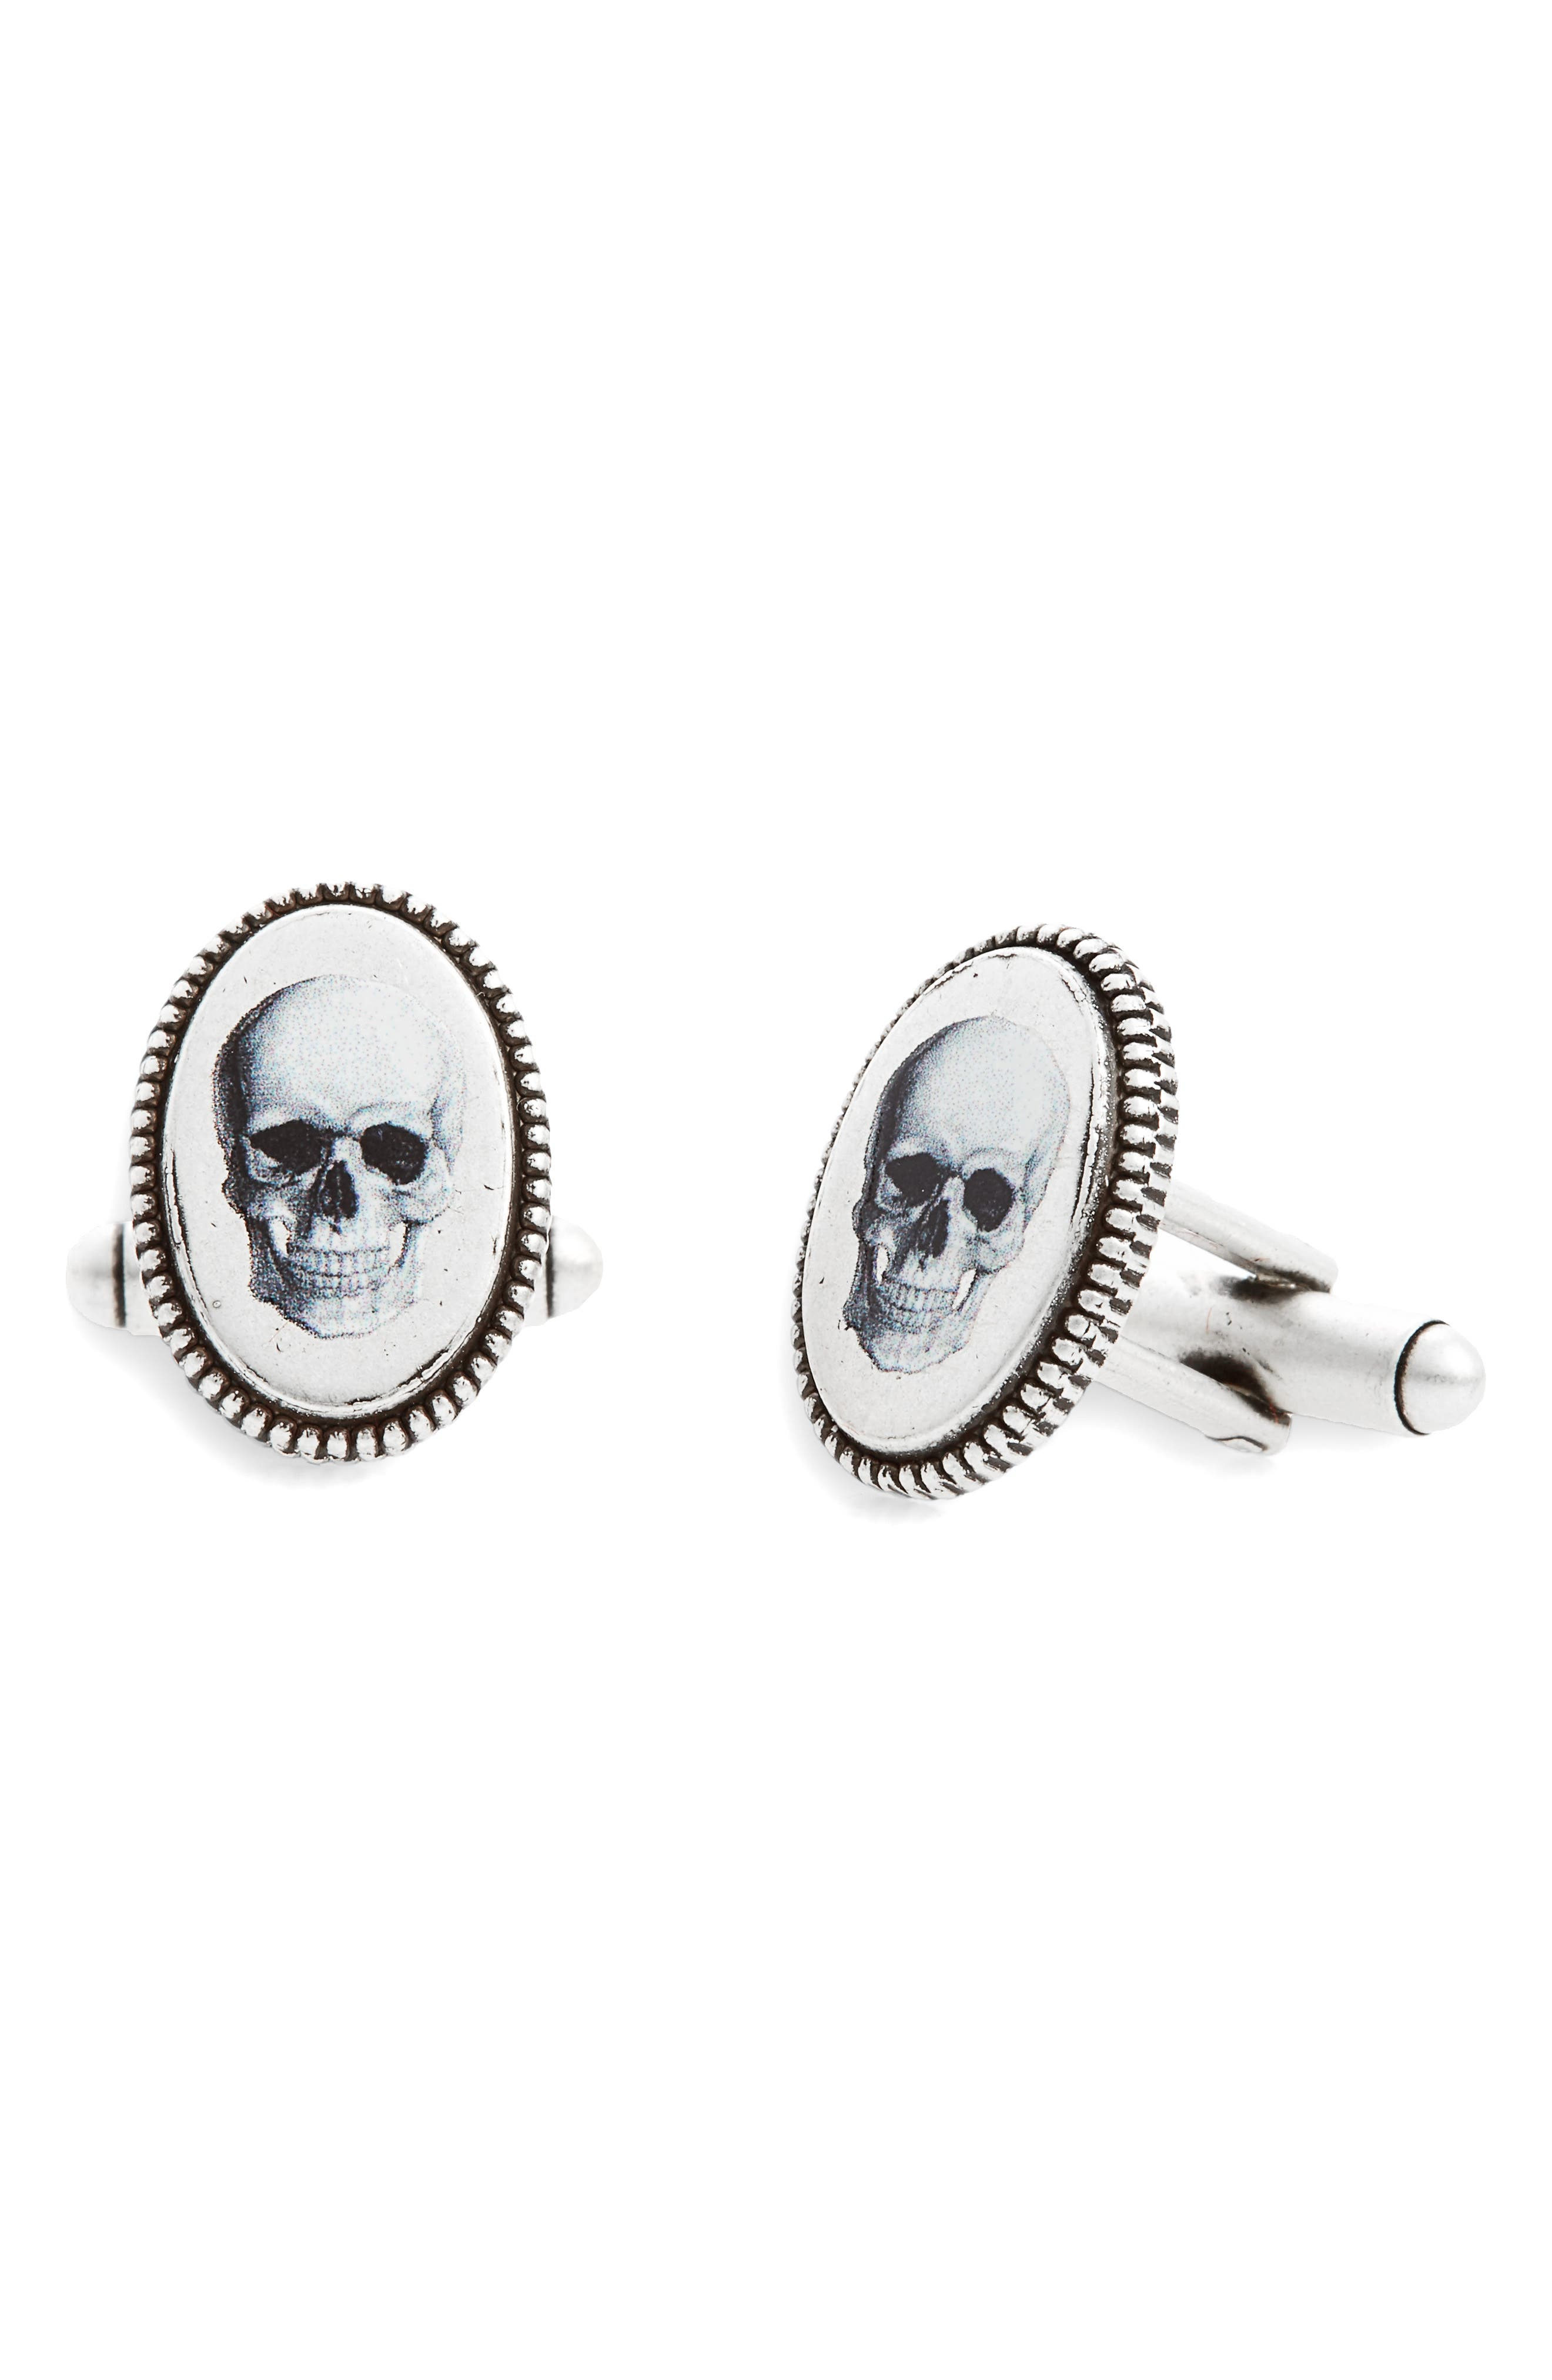 Skull Cuff Links,                             Main thumbnail 1, color,